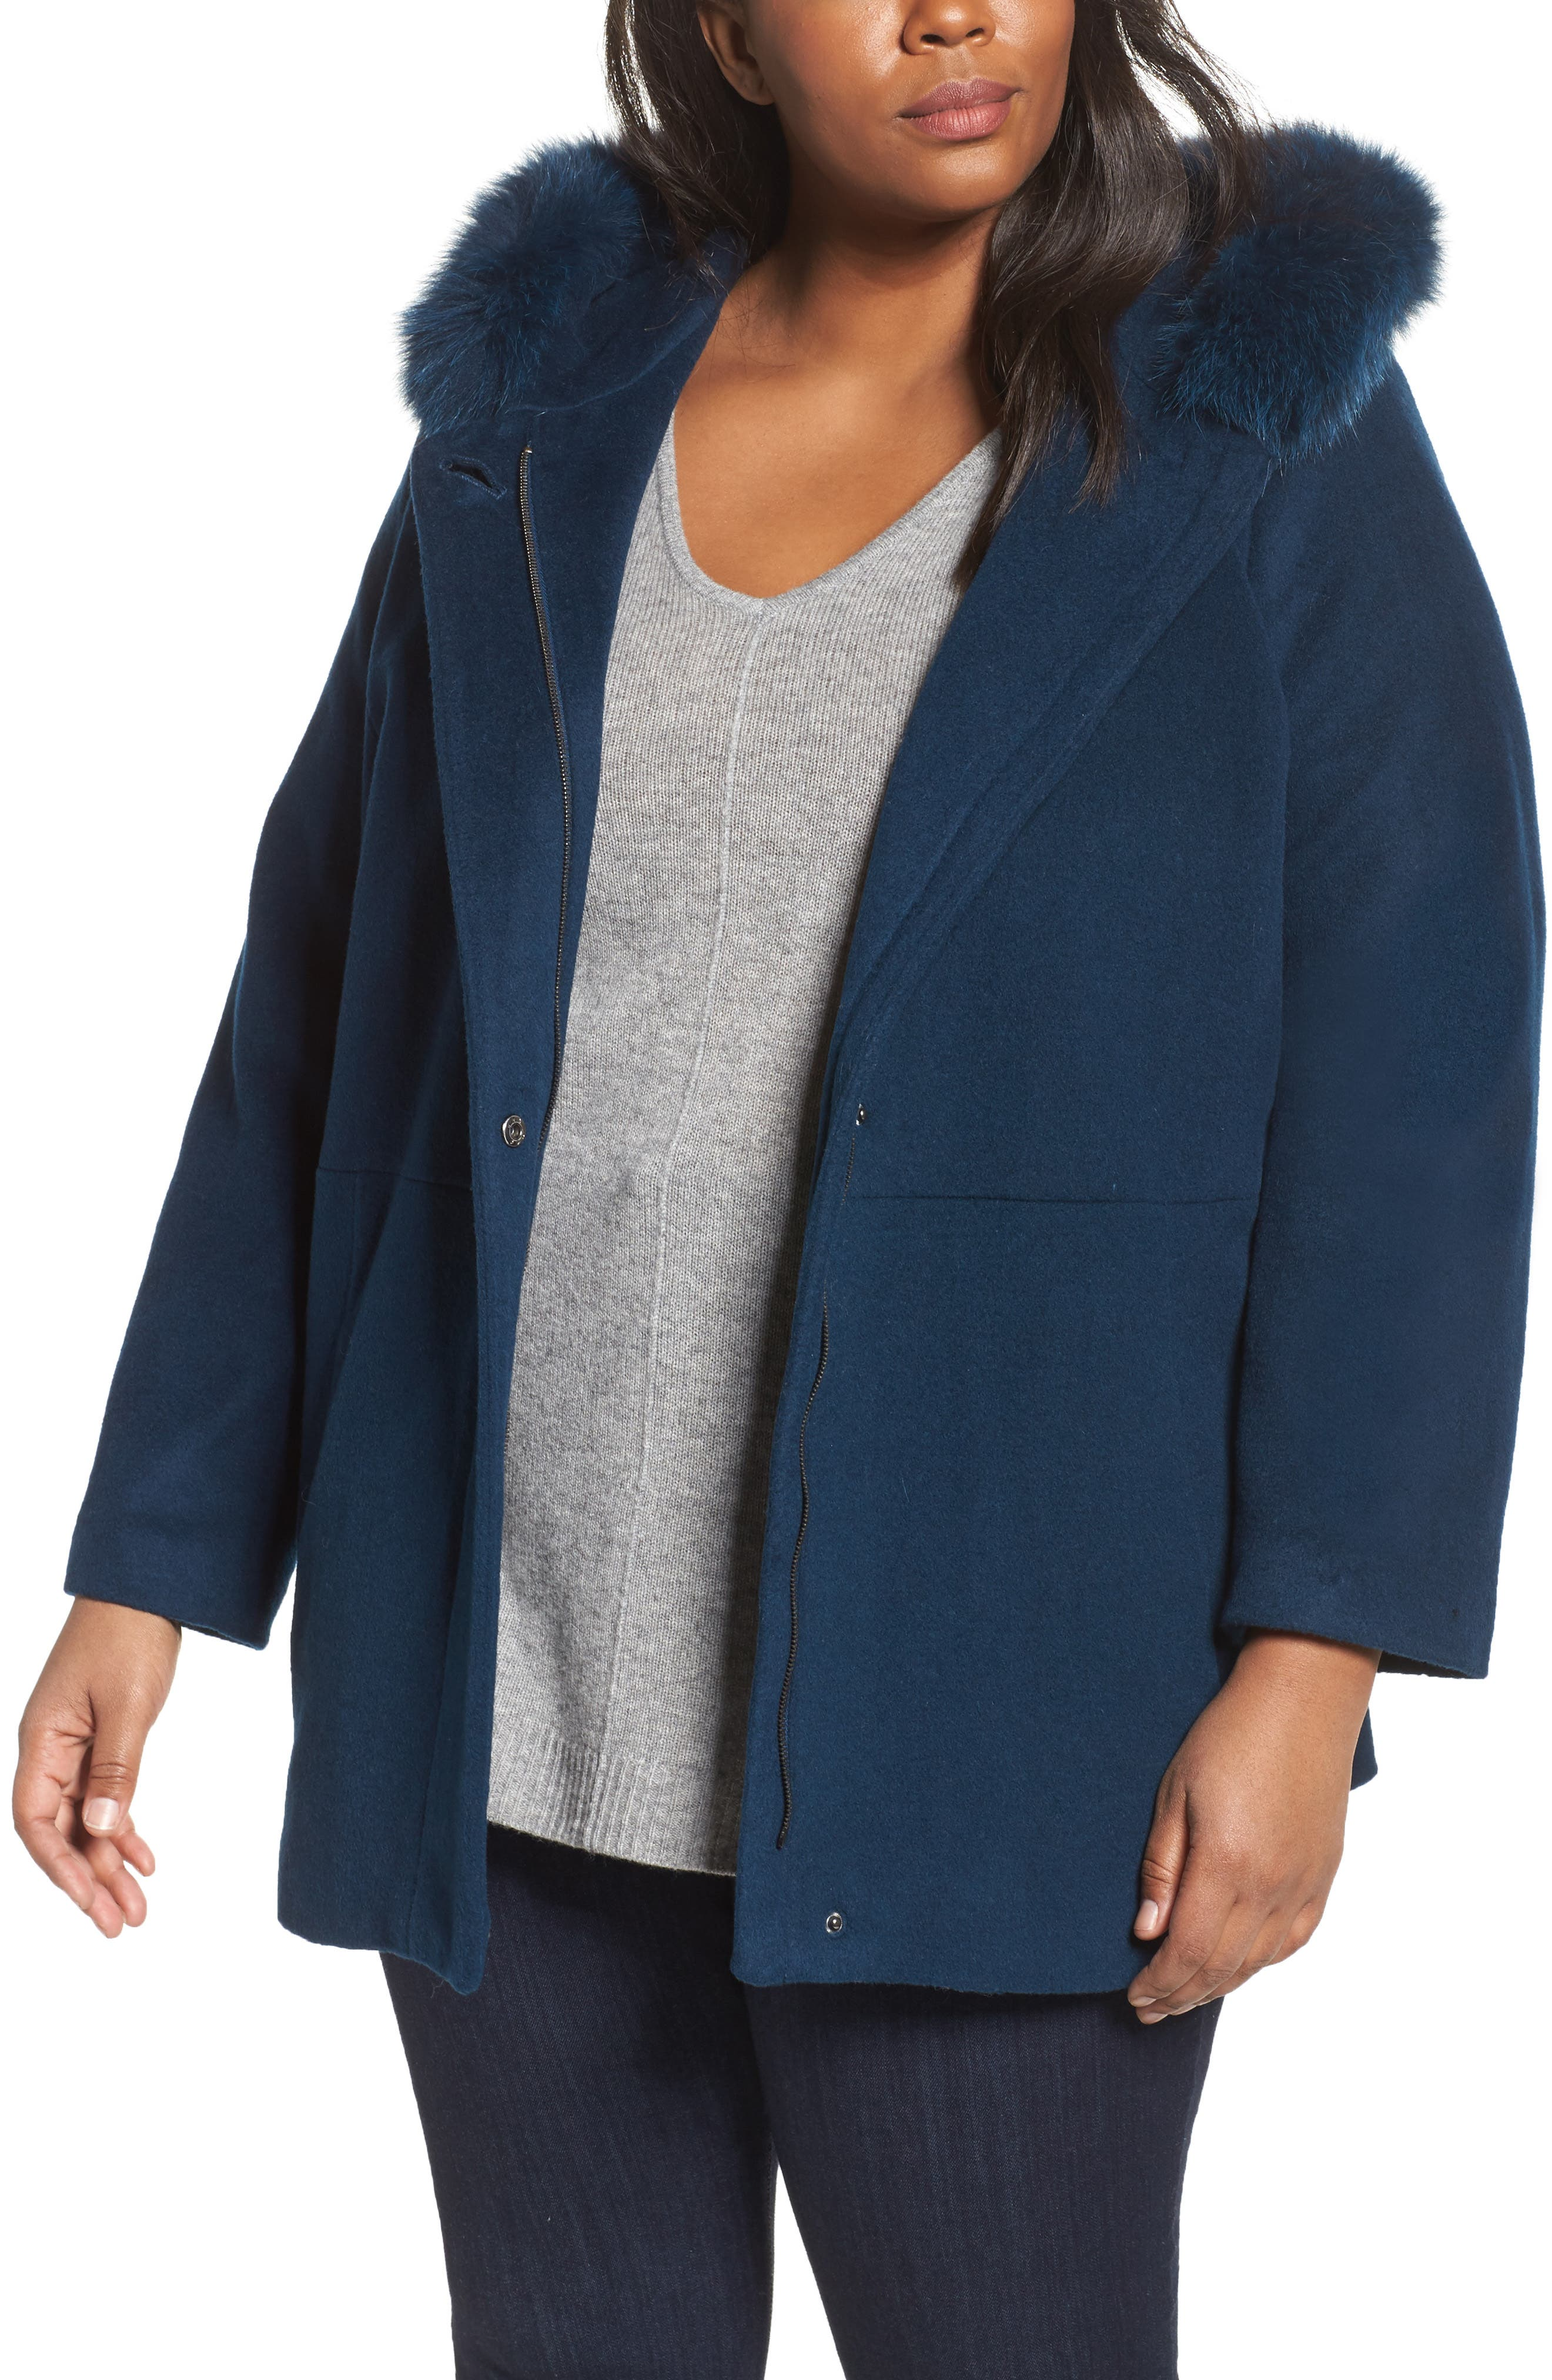 Main Image - Sachi Genuine Fox Fur Trim Hooded Wool Blend Jacket (Plus Size)